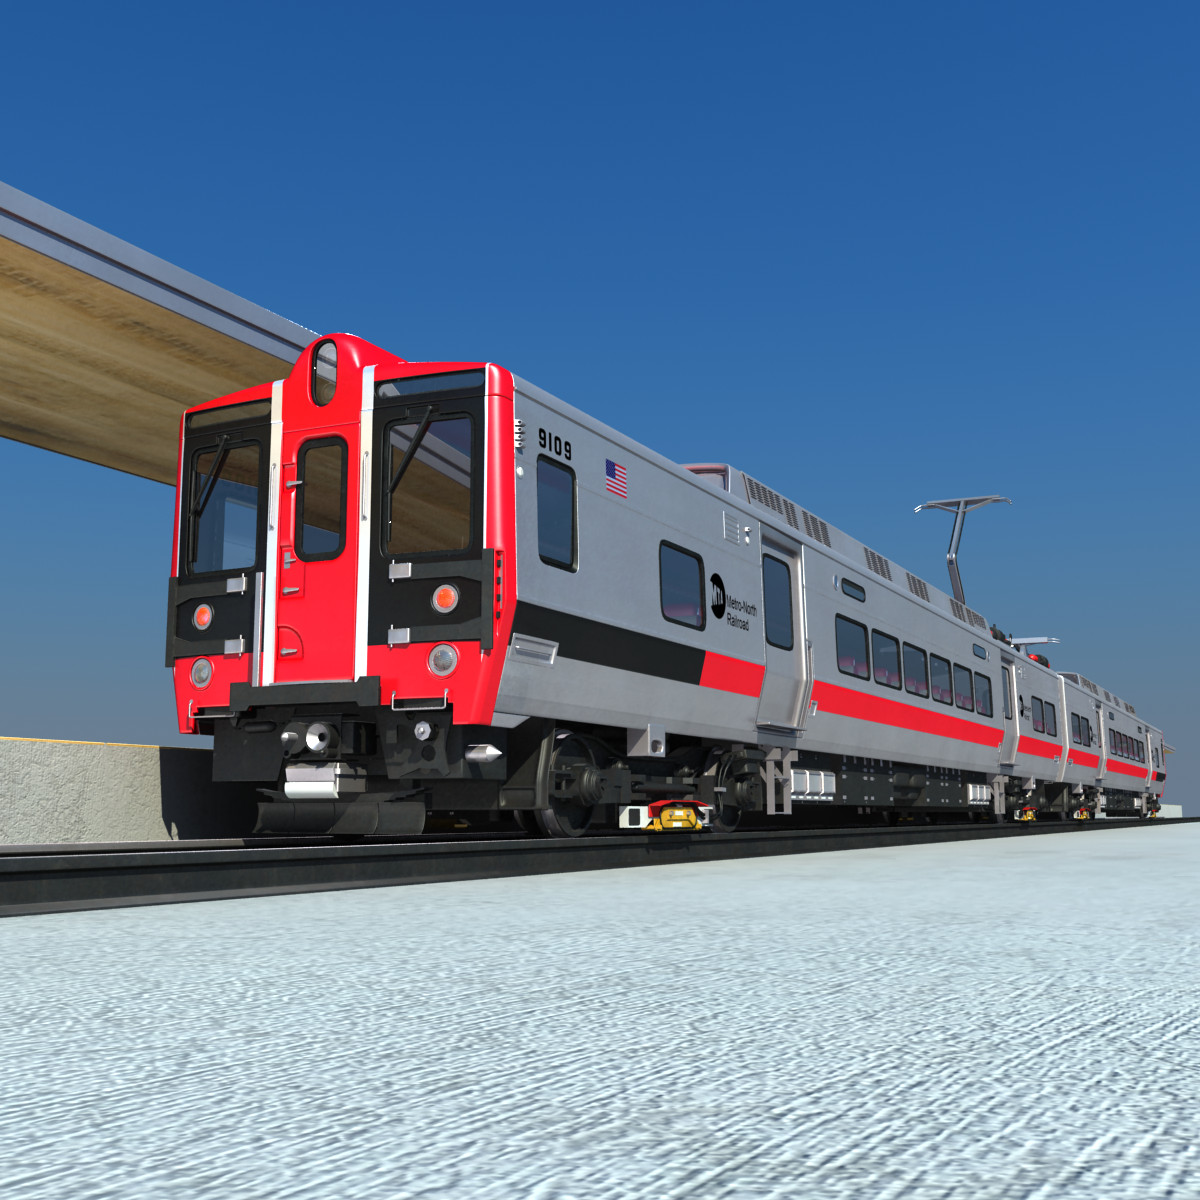 metro north kawasaki m8 3d model